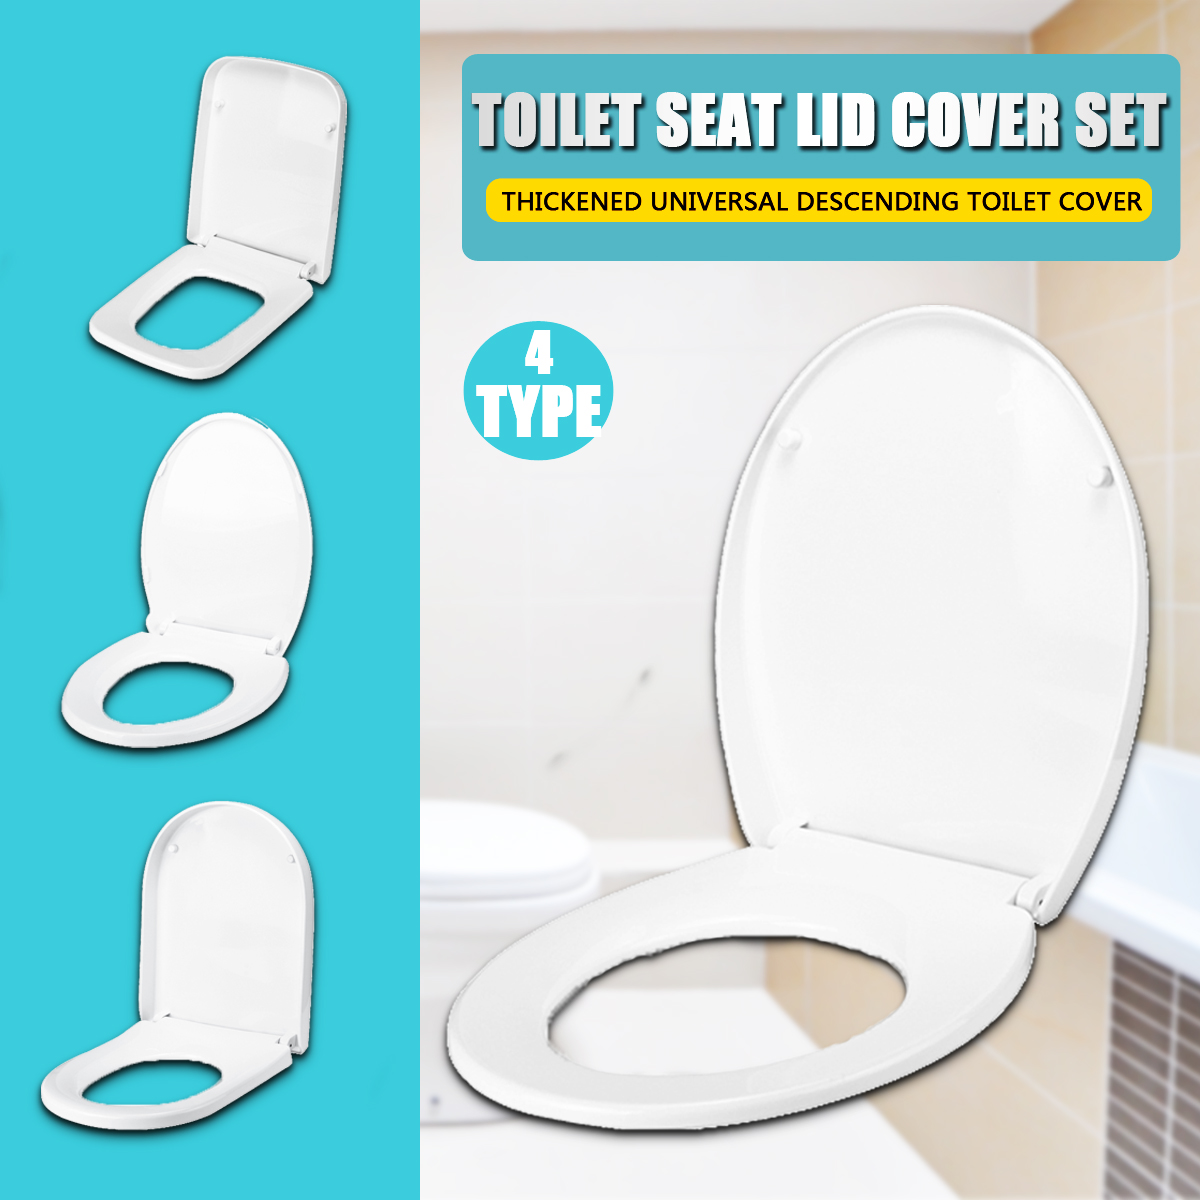 Xueqin PP Thicken Universal Slow-Close Toilet Seat Lid Cover Set High Quality For Household Wc 4 Types